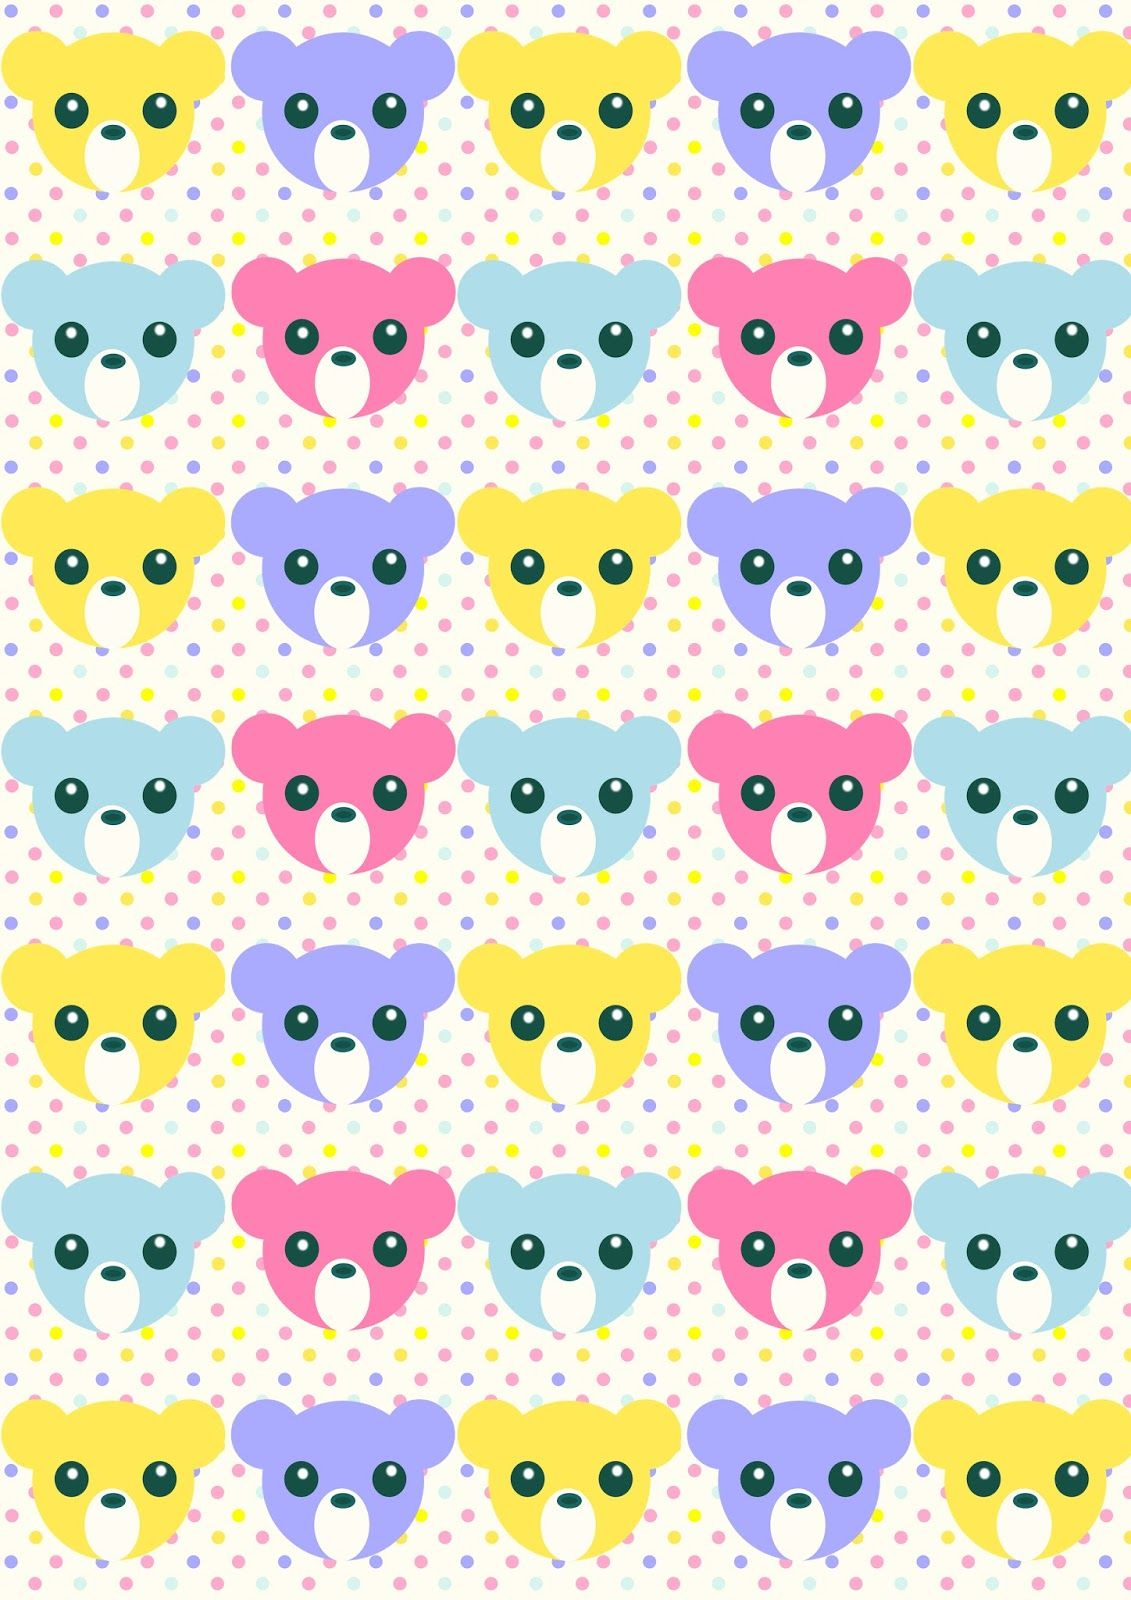 Free Printable Nursery Pattern Paper Pastelcolored Babycolors